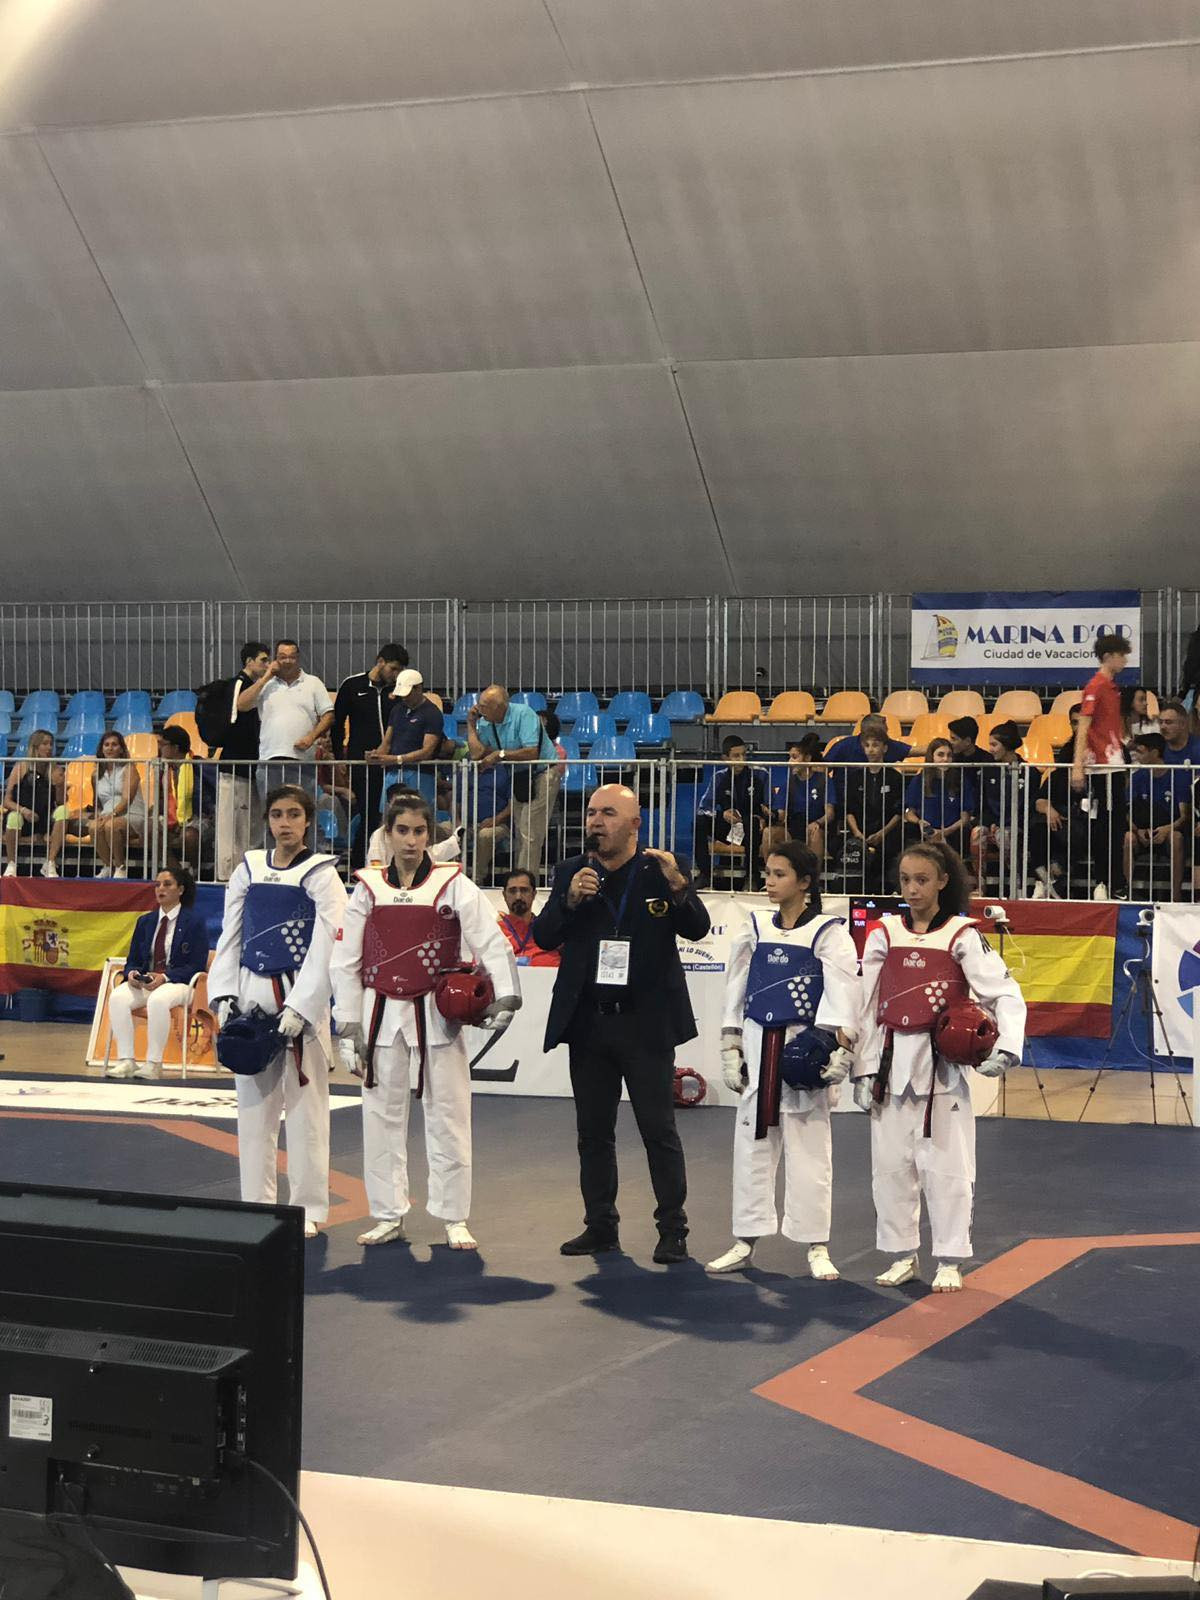 World Taekwondo Europe say they are acting to protect the health of young athletes ©WTE